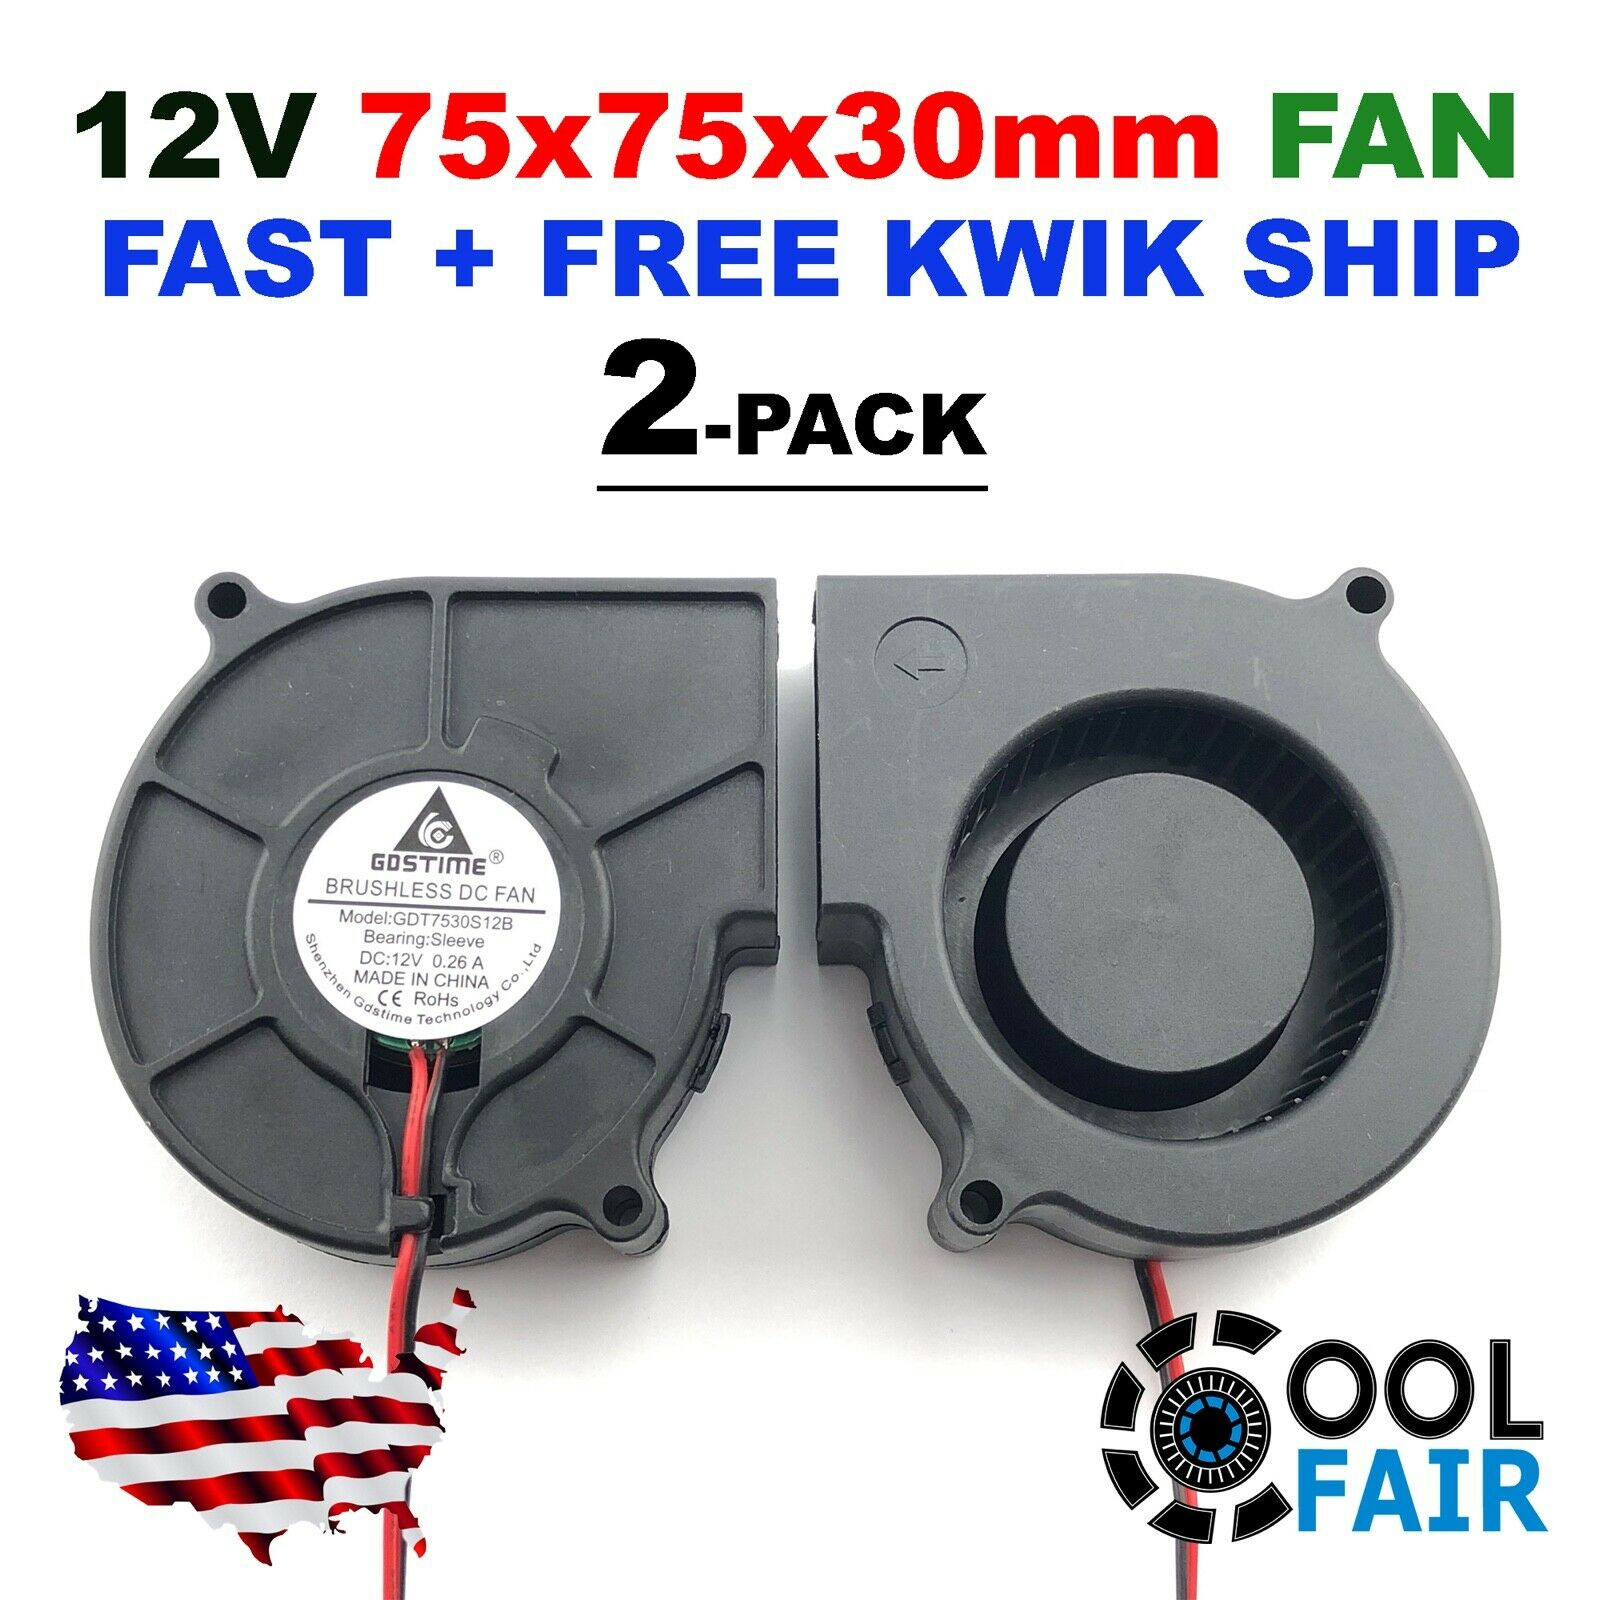 GDSTIME 75mm Fan 75mm x 30mm Blower Fan 24V Dc Brushless Cooling Fan 7530S